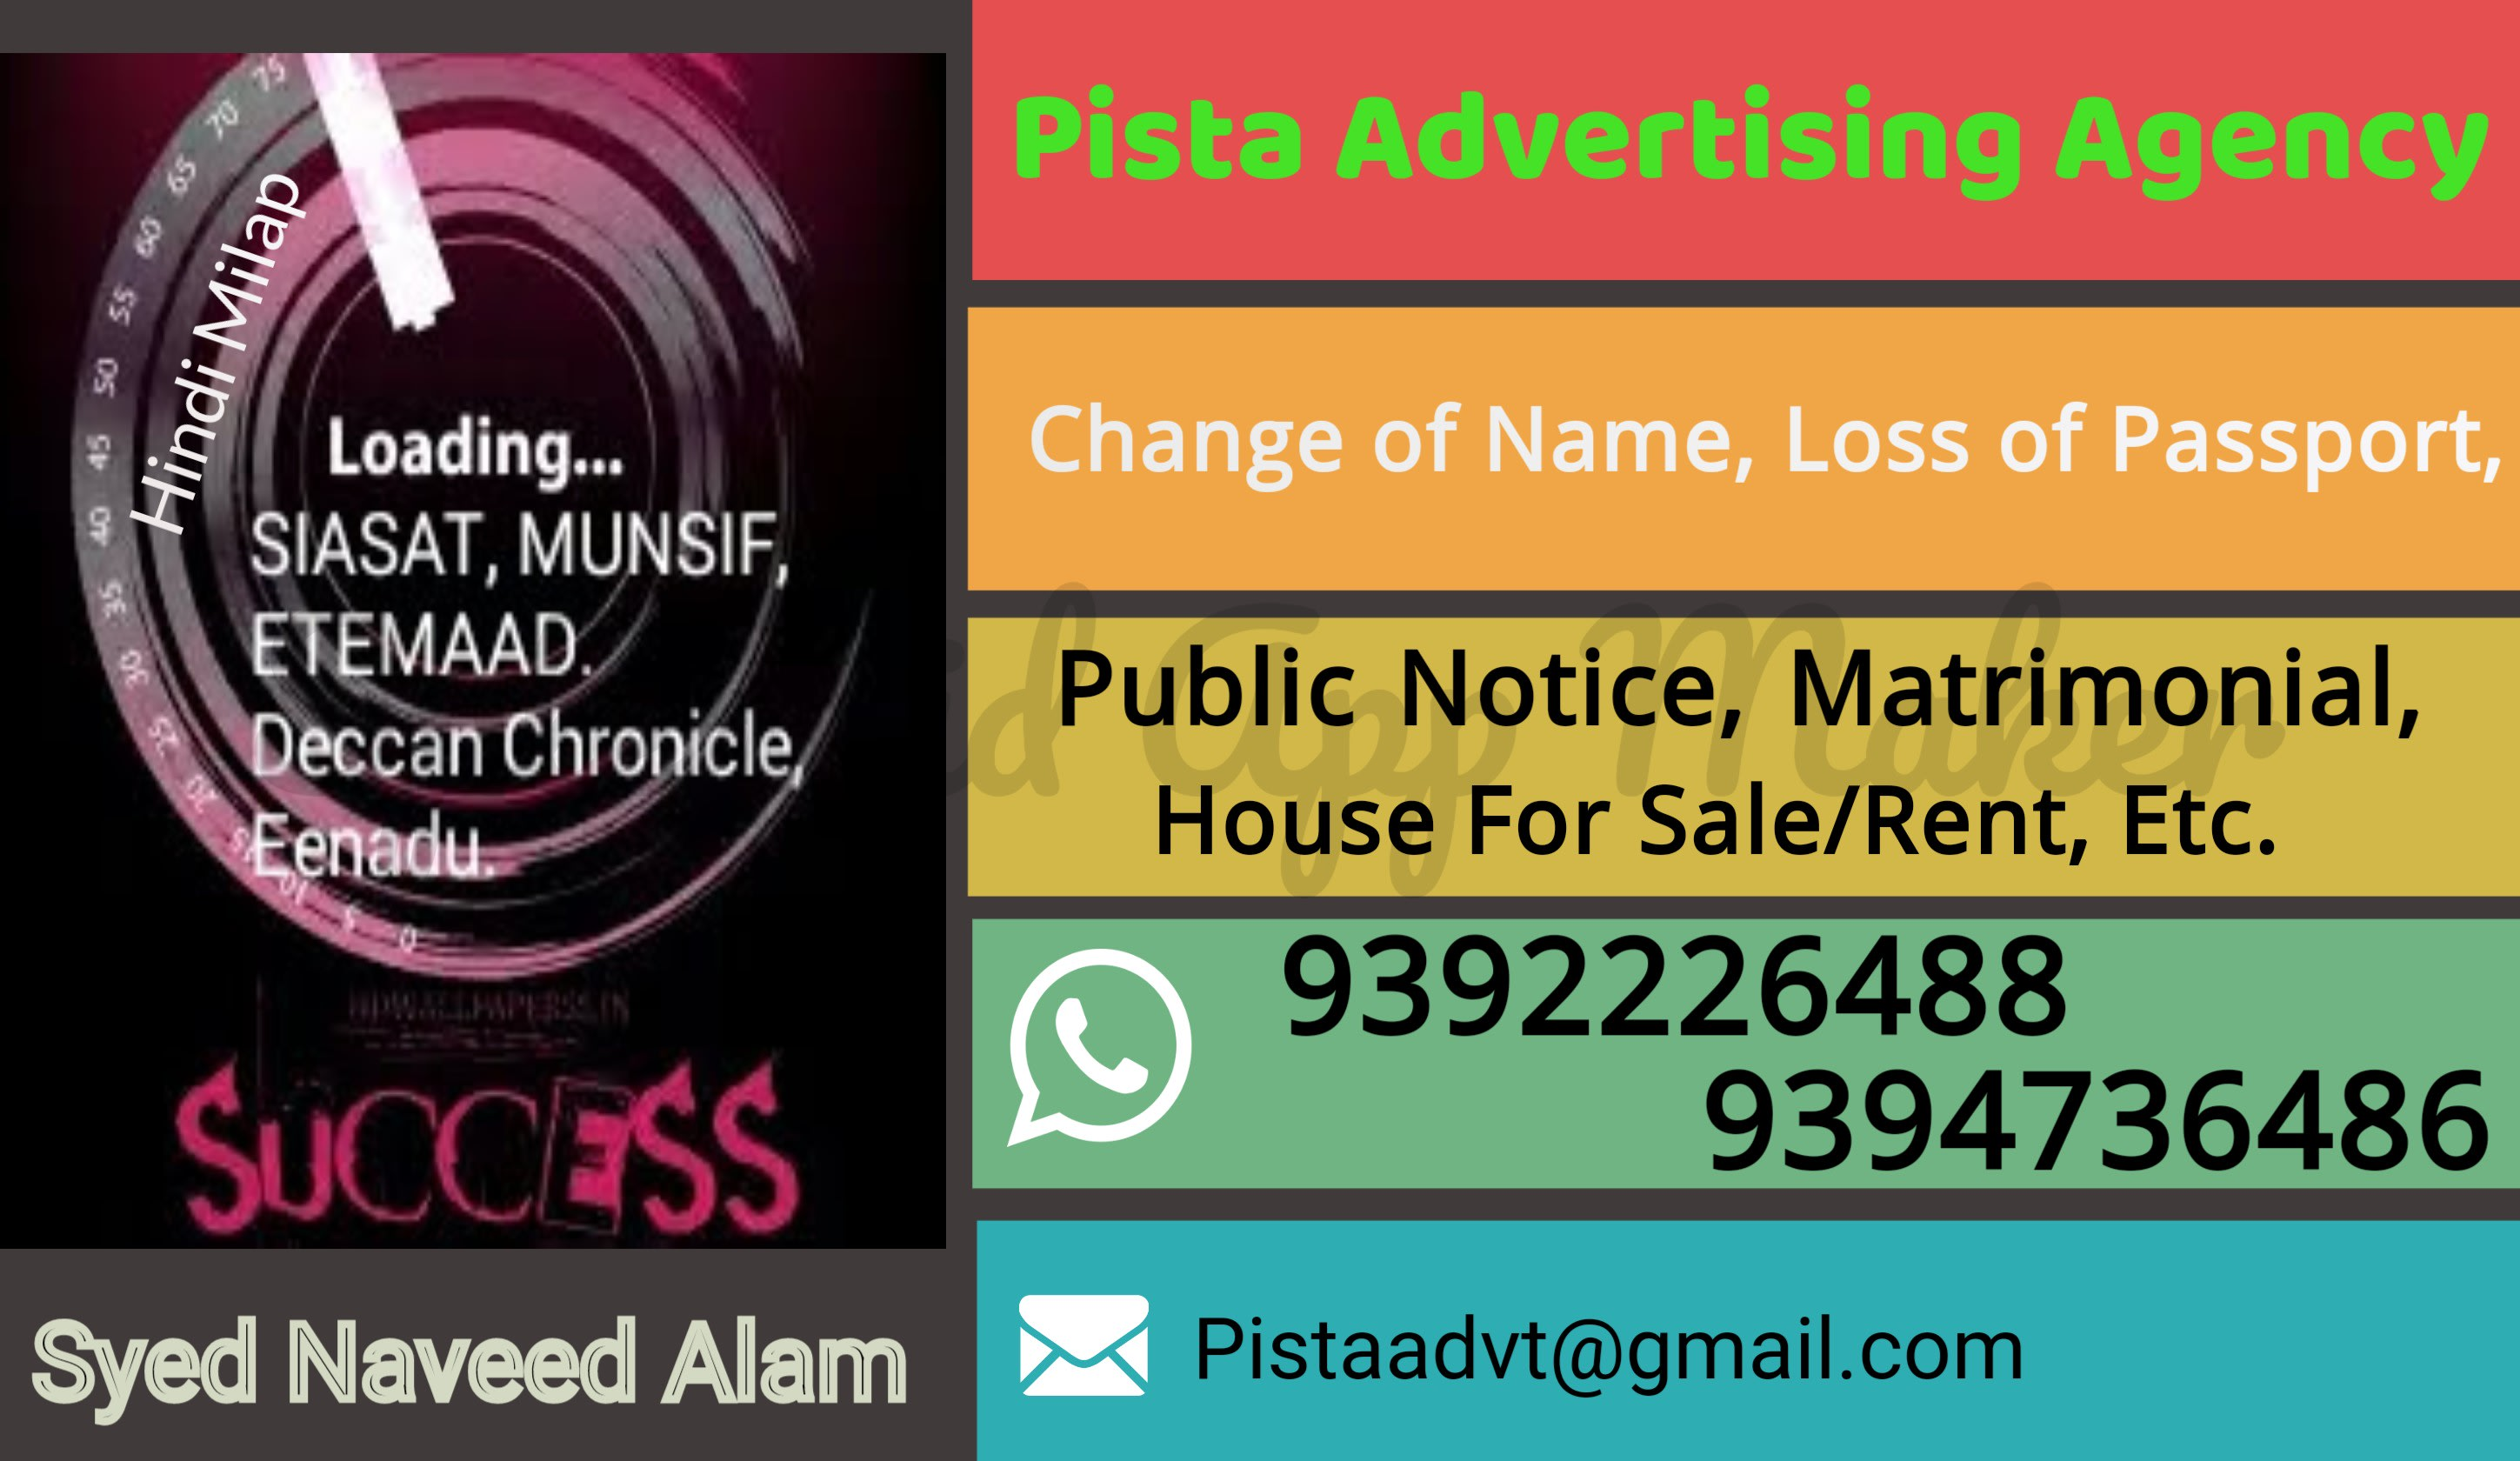 News Papers Ads | Advertising Agency in Hyderabad